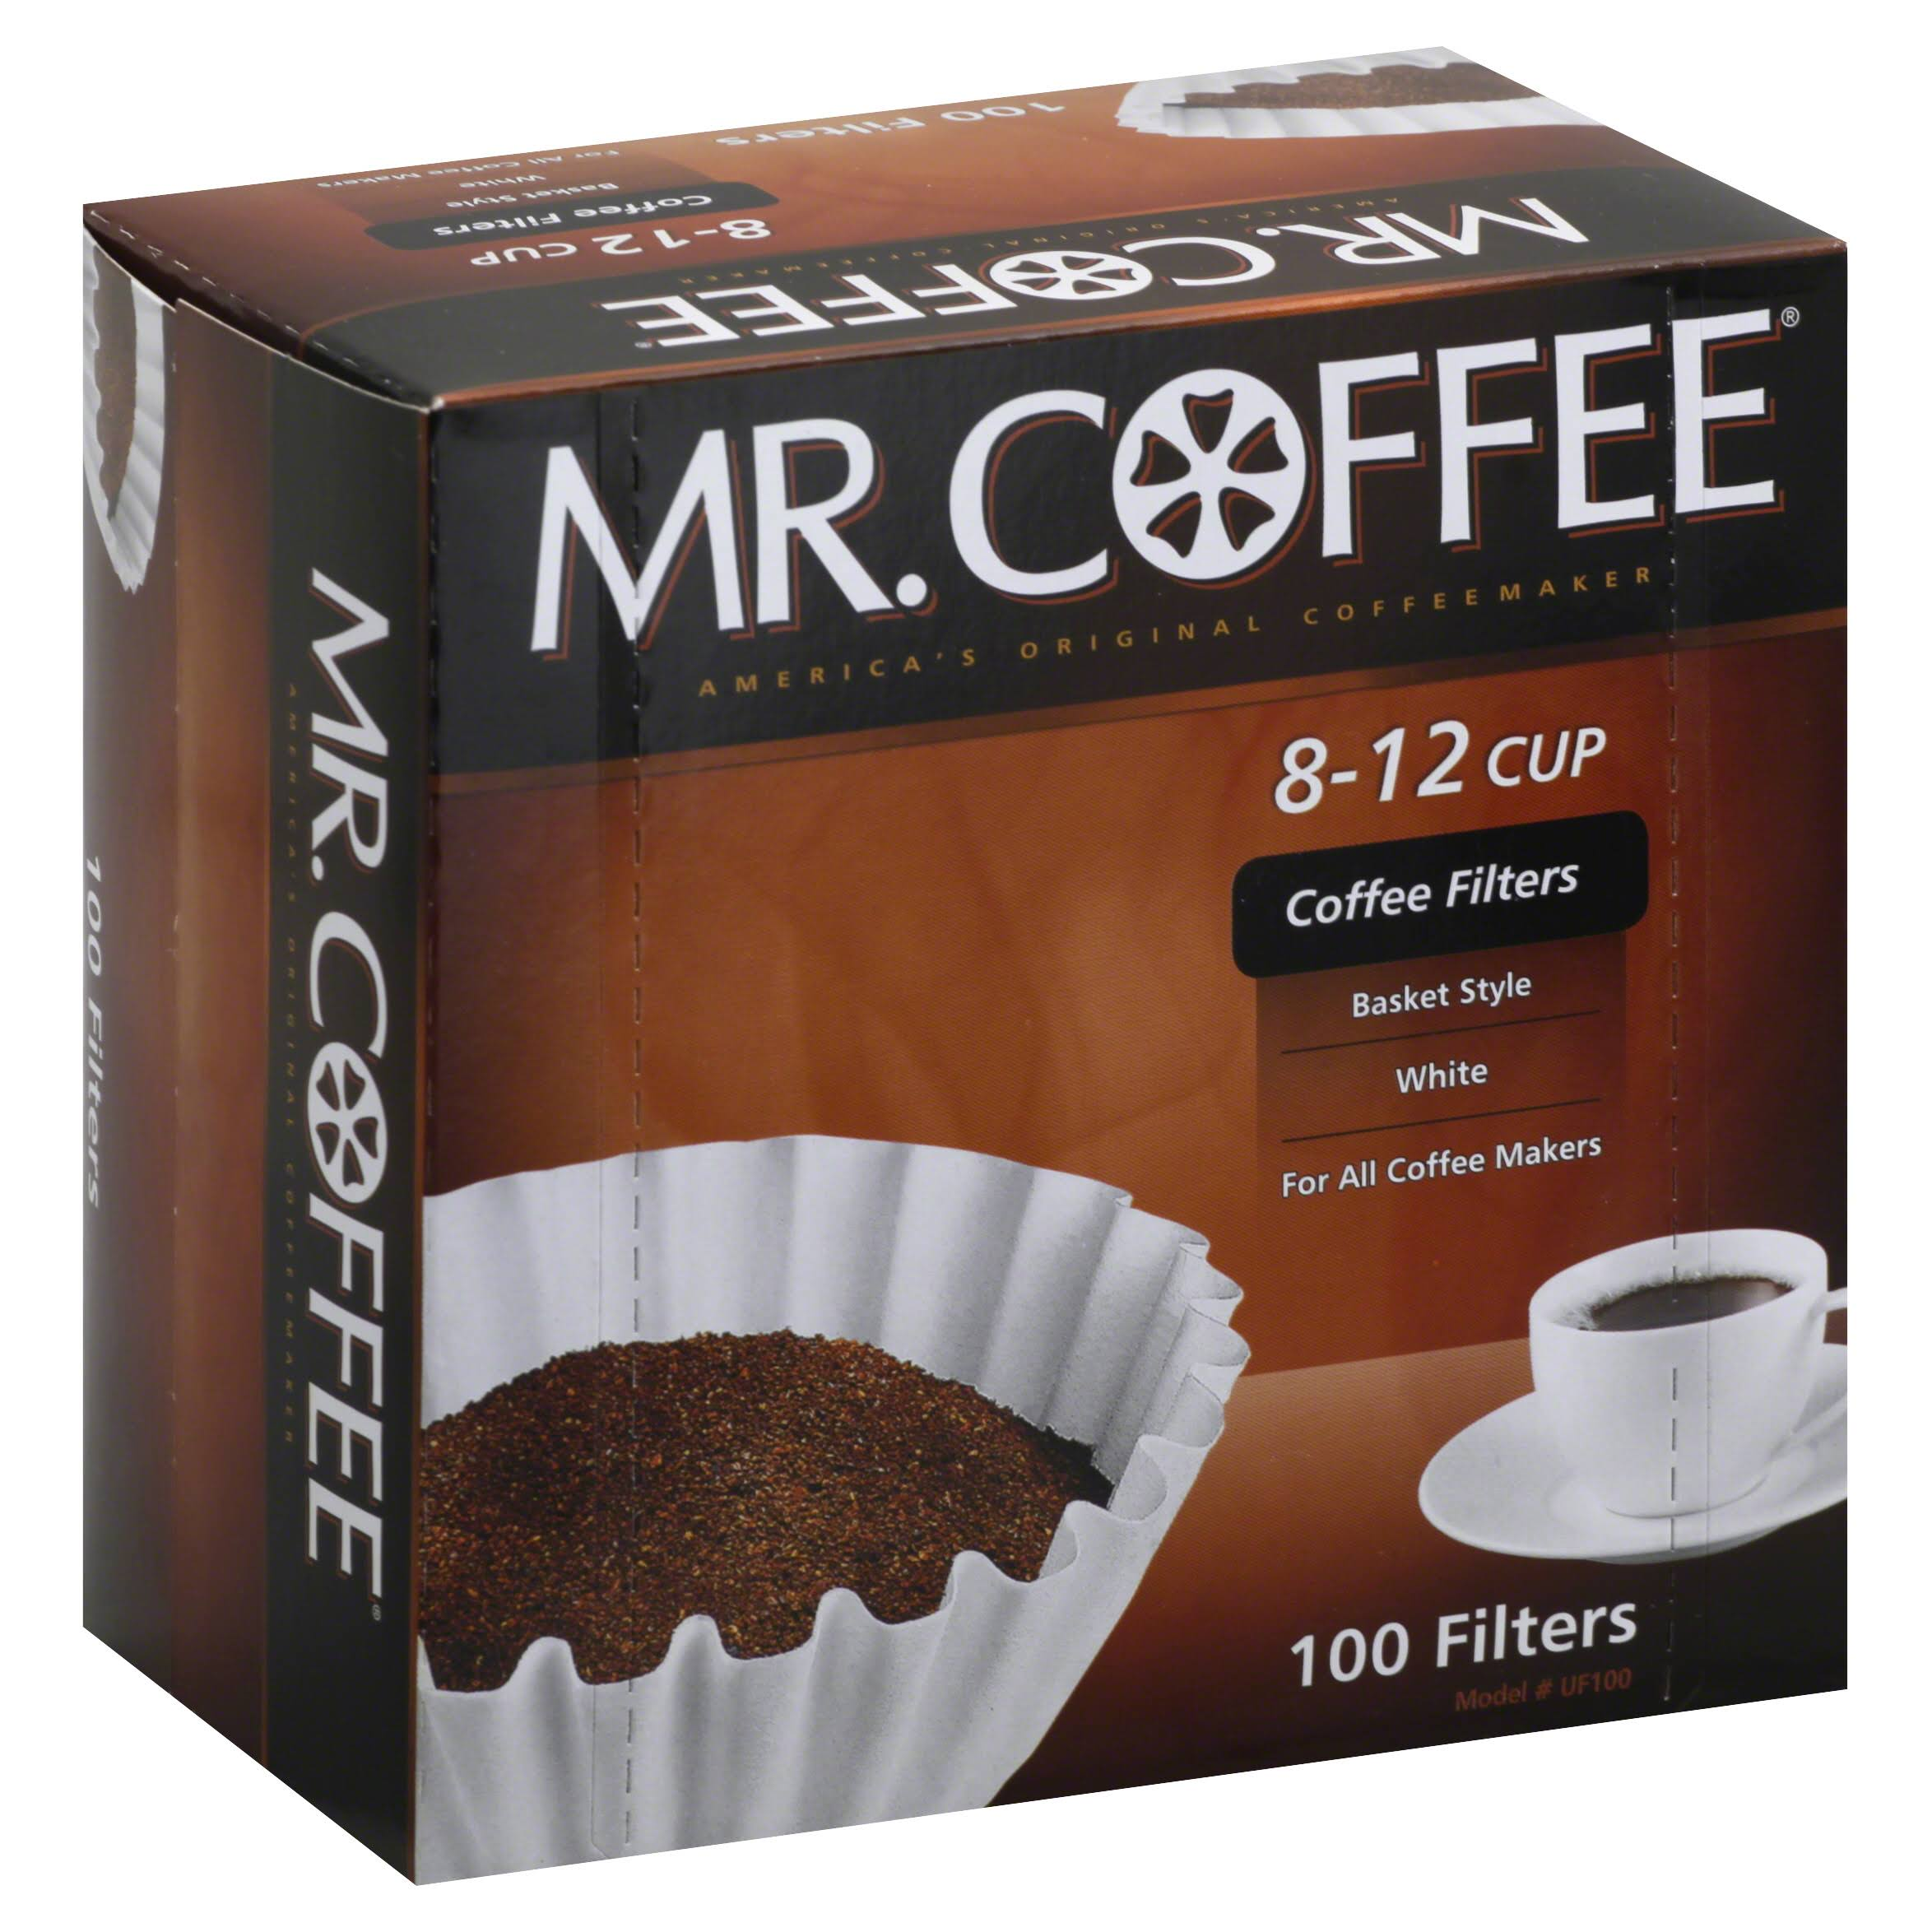 Mr Coffee Coffee Filters, White, 8-12 Cup - 100 filters